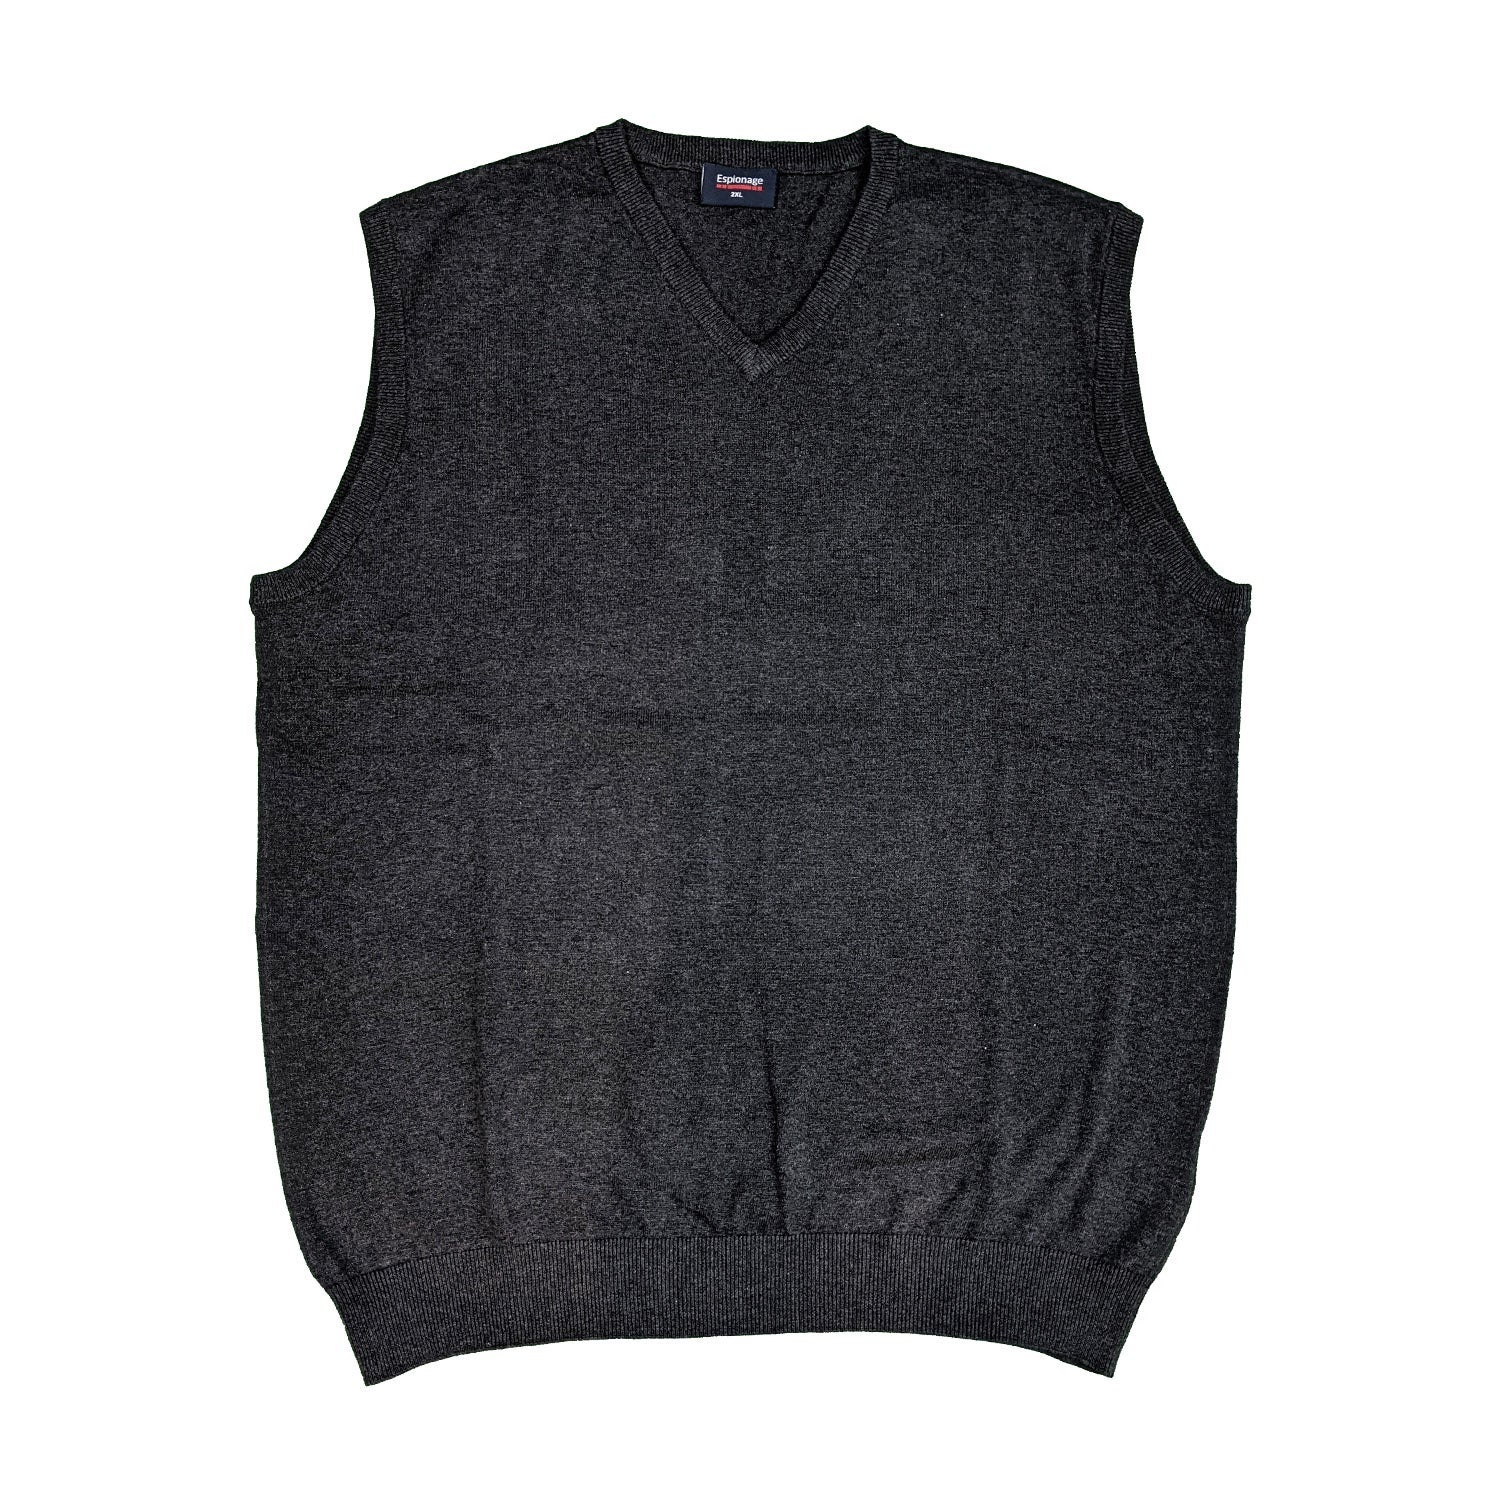 Espionage V Neck Sleeveless Pullover - KW032 - Charcoal Marl